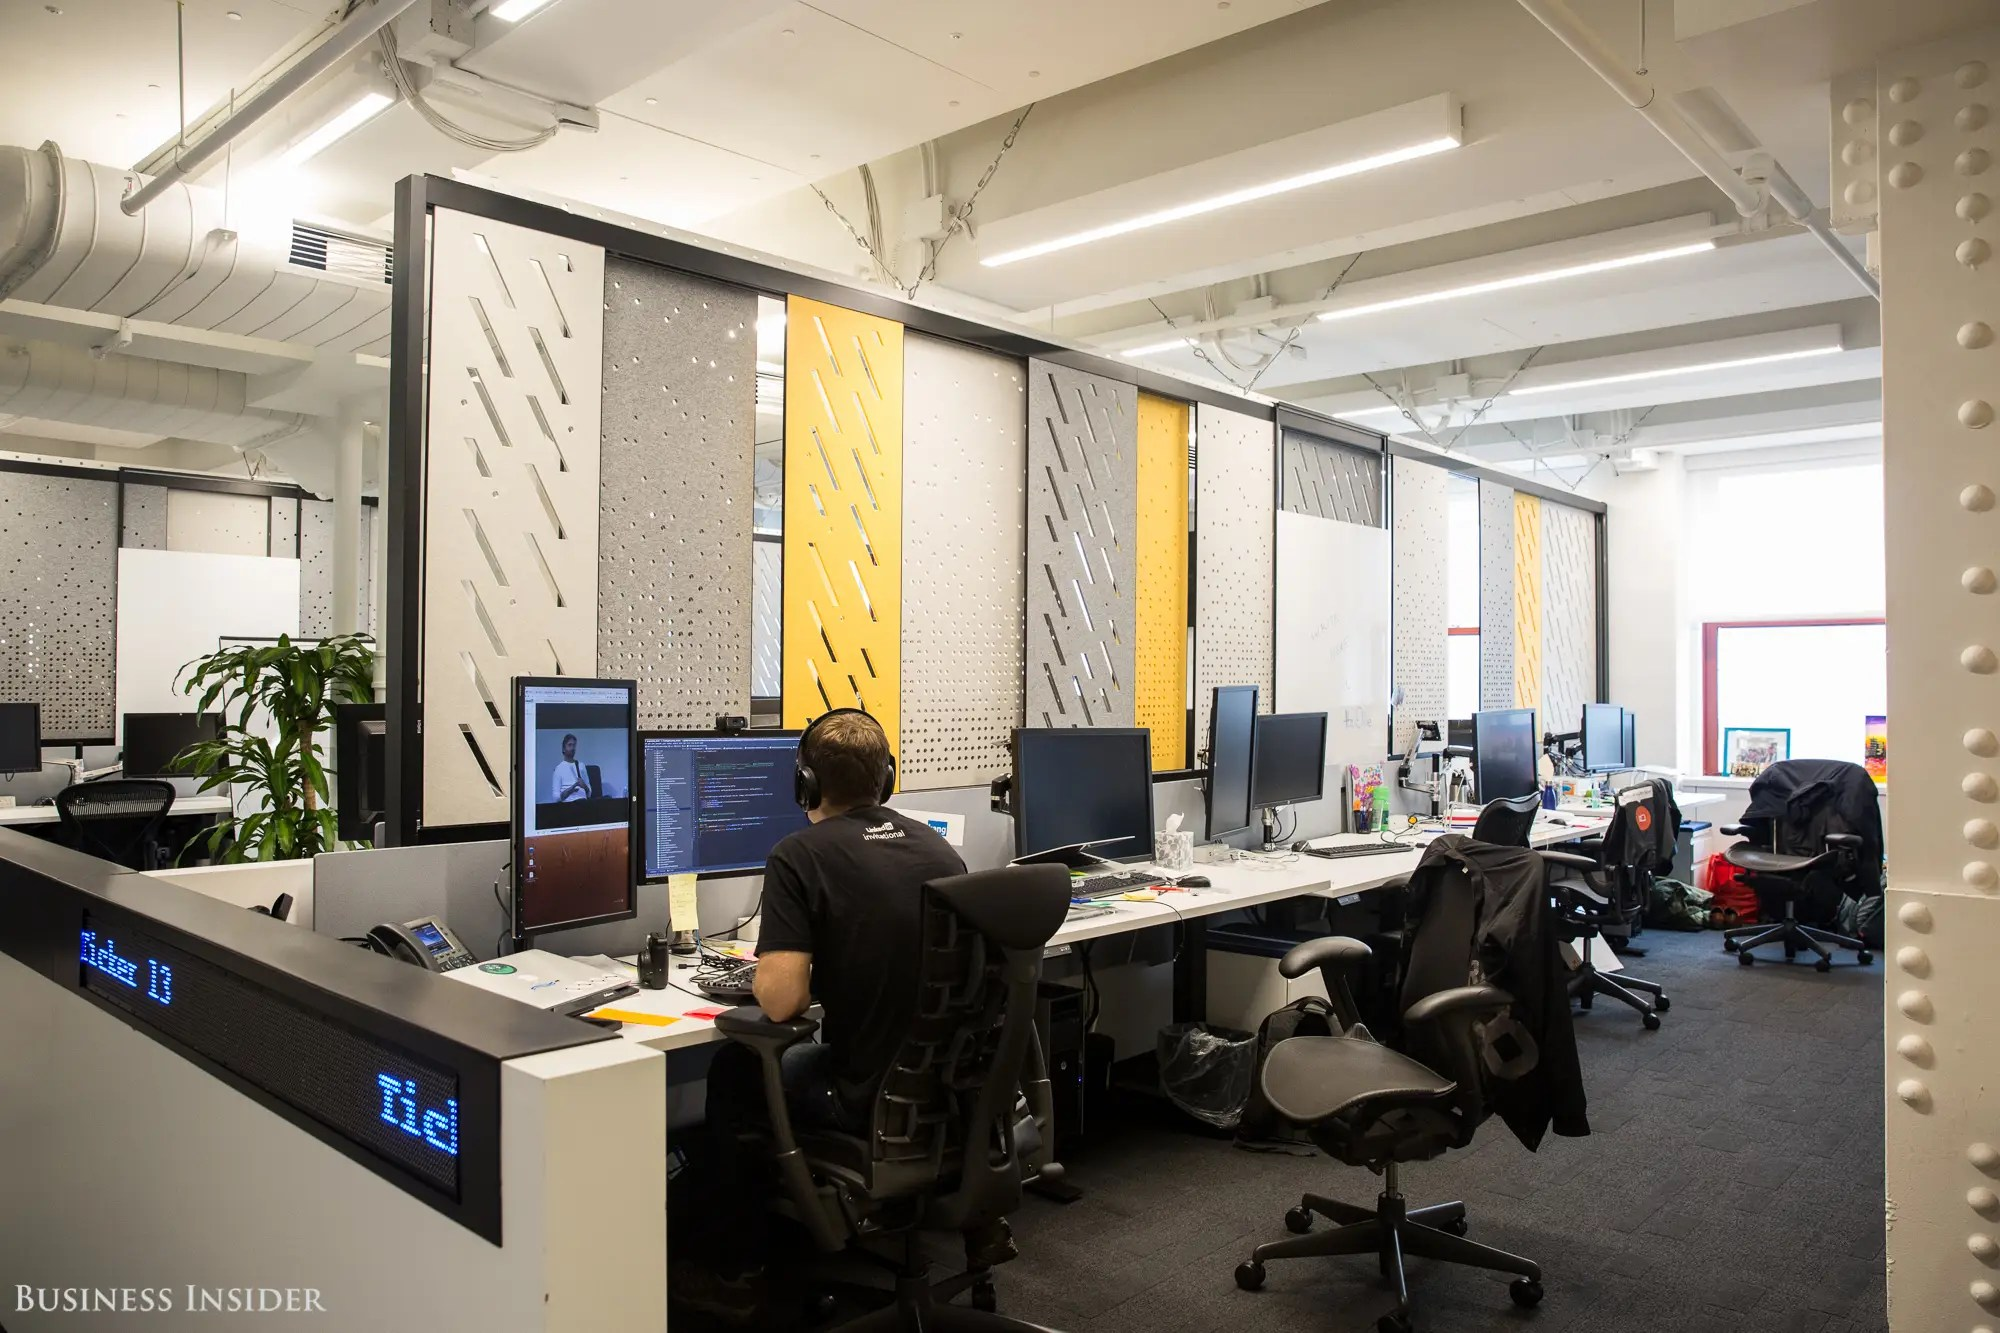 The main office space features an open layout. LinkedIn's workspace is malleable, featuring panels that employees can slide and adjust.